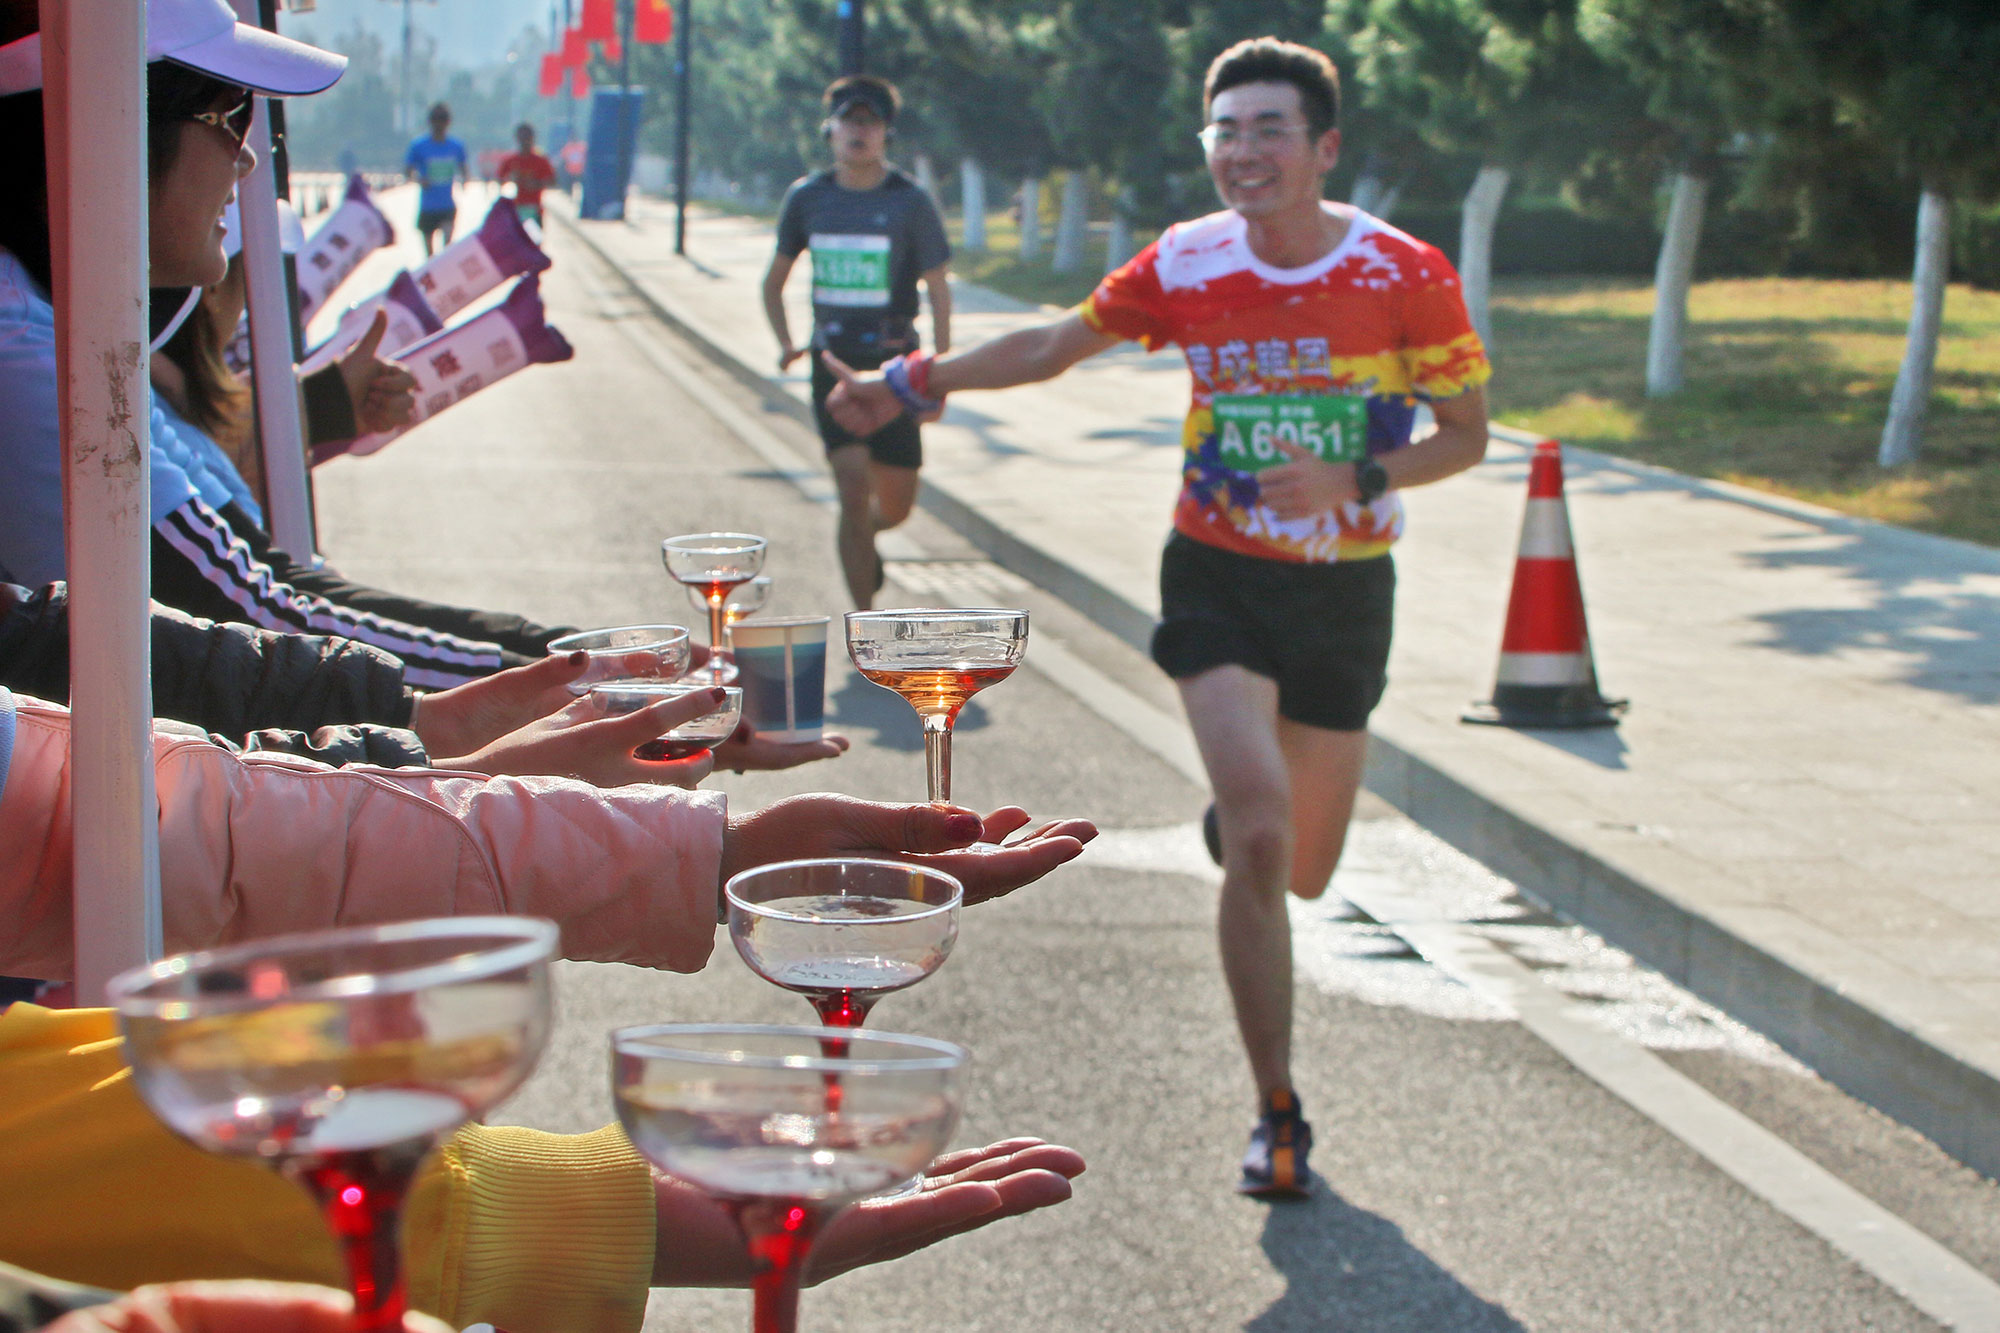 The marathon runner are enjoying grape wine and seafood at 2019 Penglai Wine International Marathon in Yantai,Shandong,China on 27th October, 2019